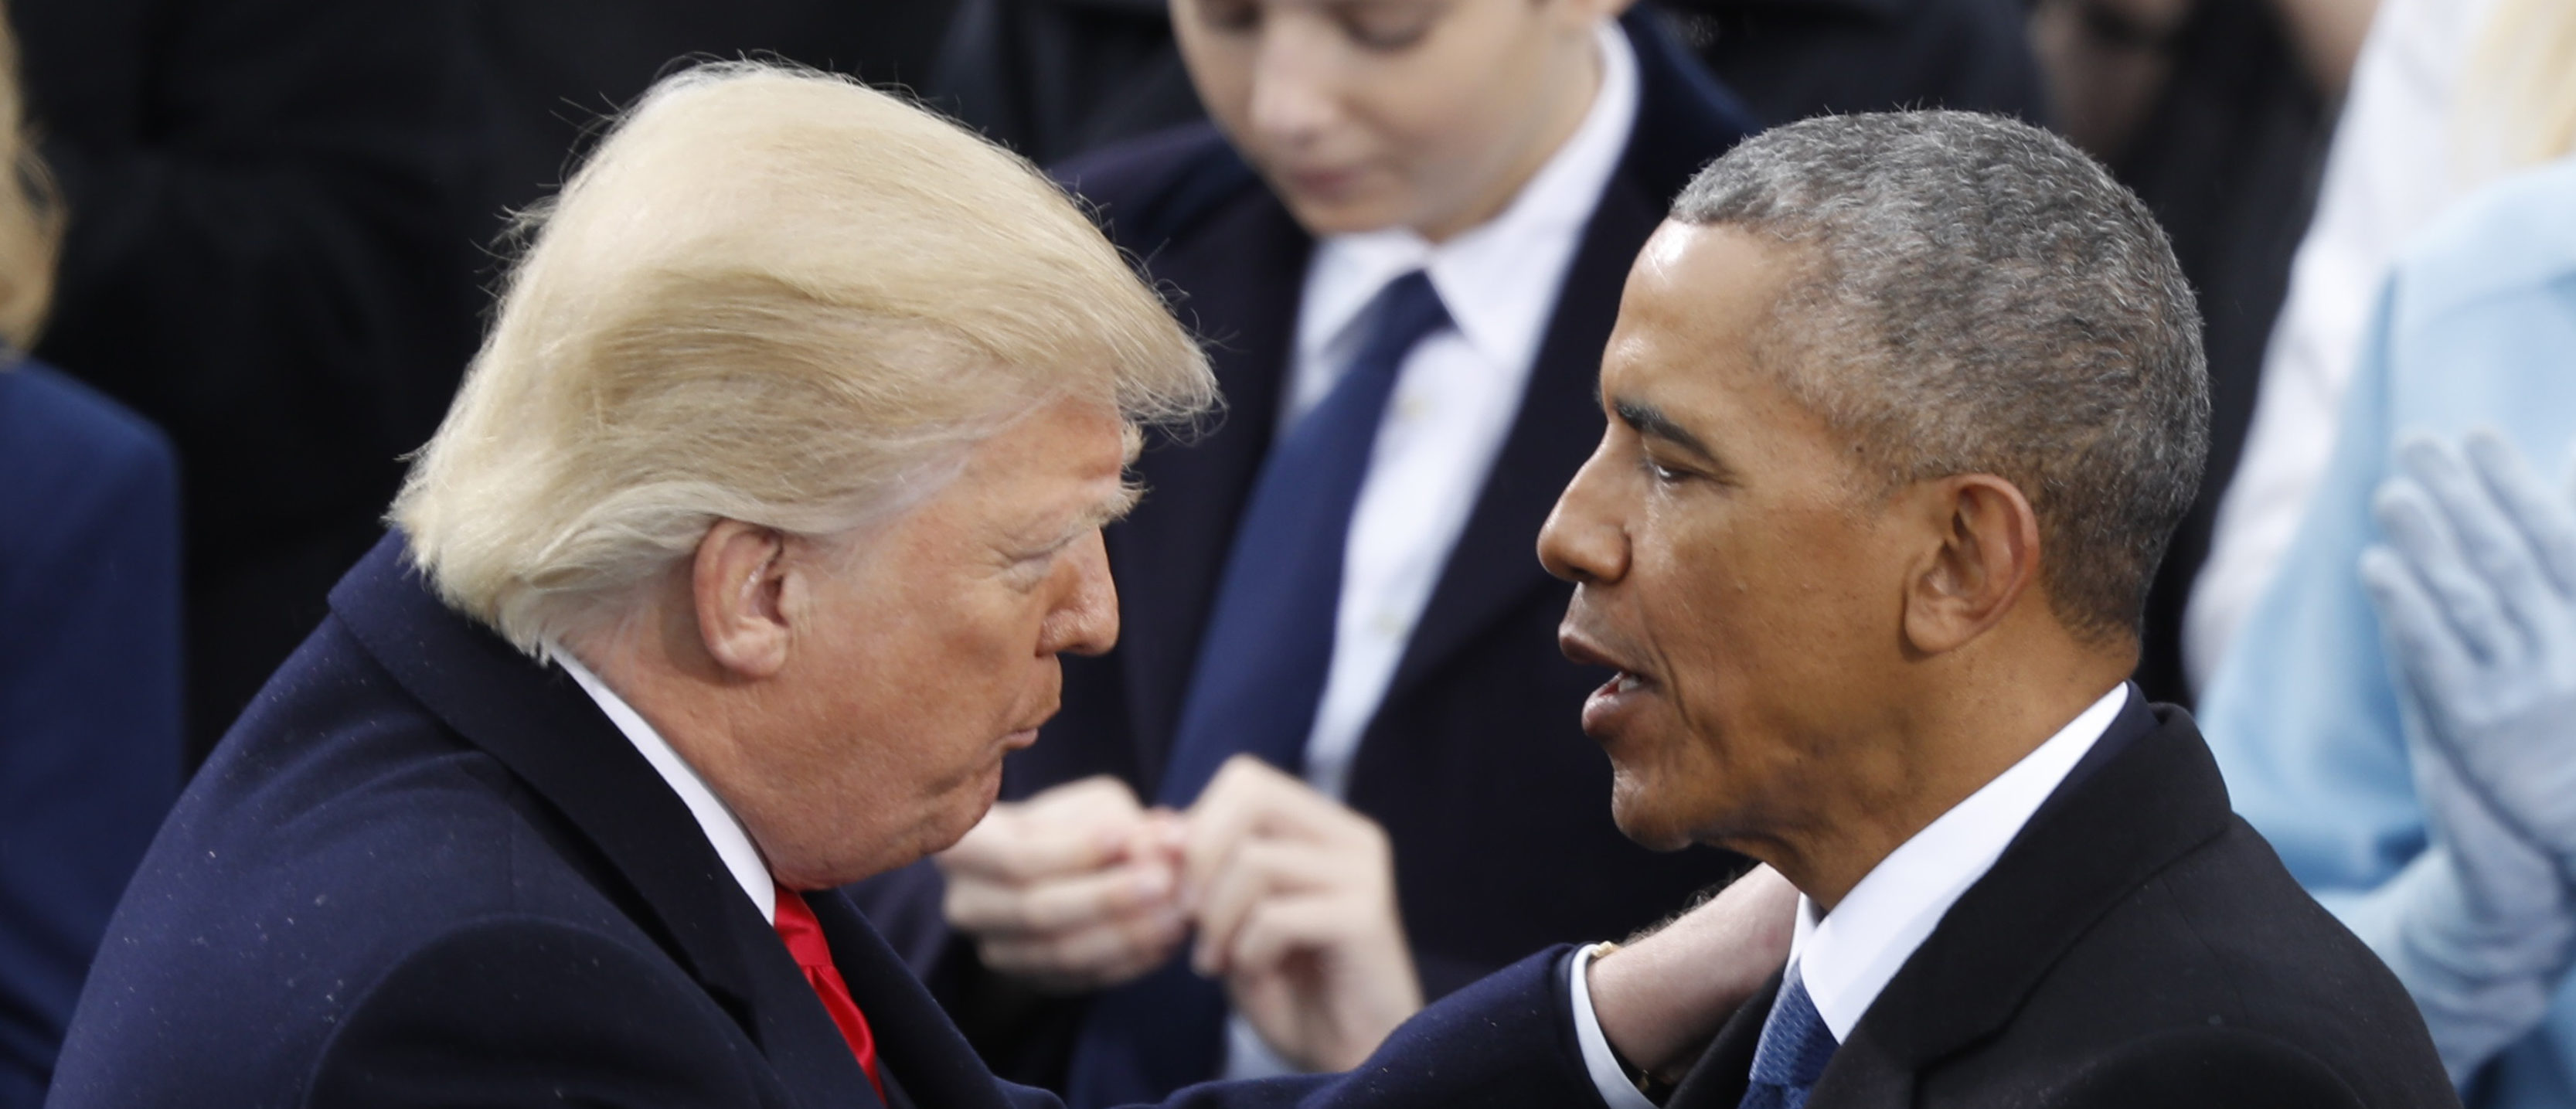 U.S. President Donald Trump (L) greets former President Barack Obama after being sworn in as the 45th president of the United States on the West front of the U.S. Capitol in Washington, U.S., January 20, 2017. REUTERS/Lucy Nicholson